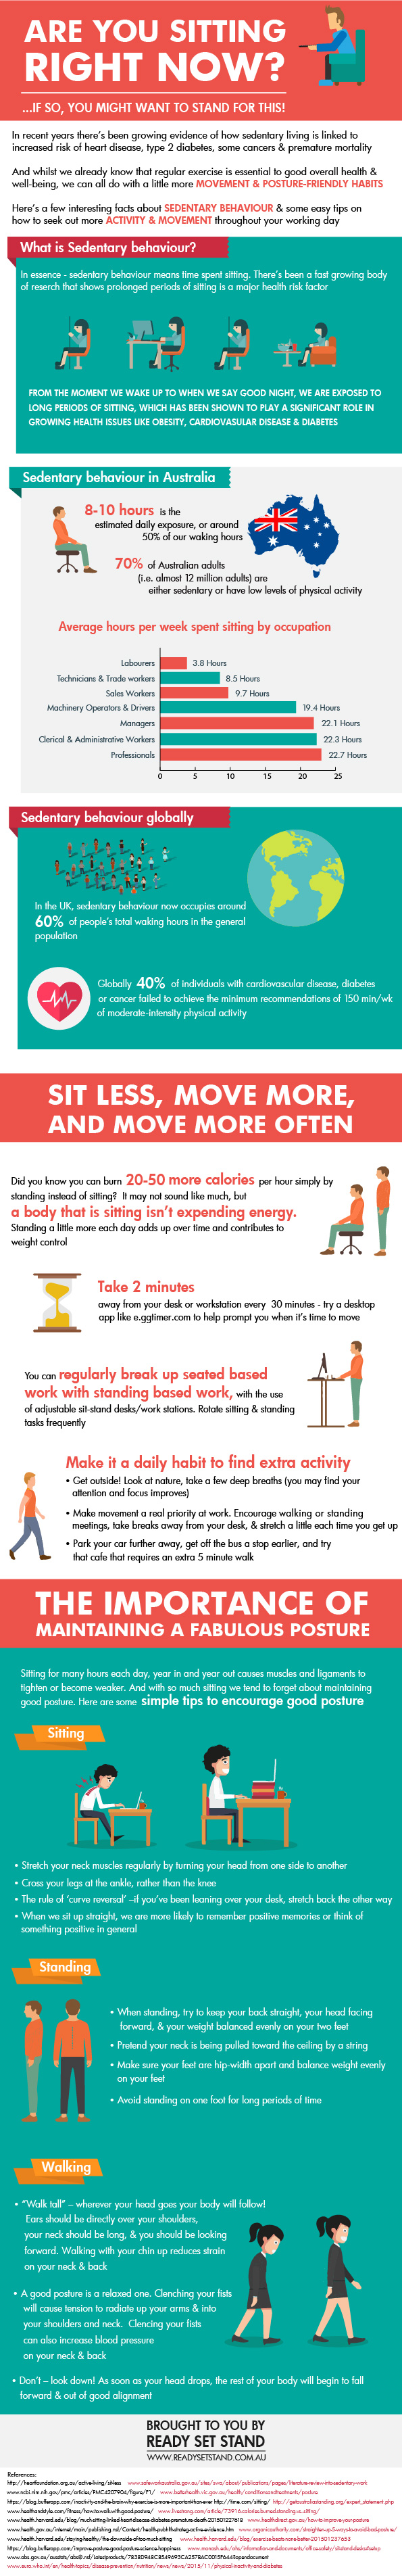 sedentary-living-infographic